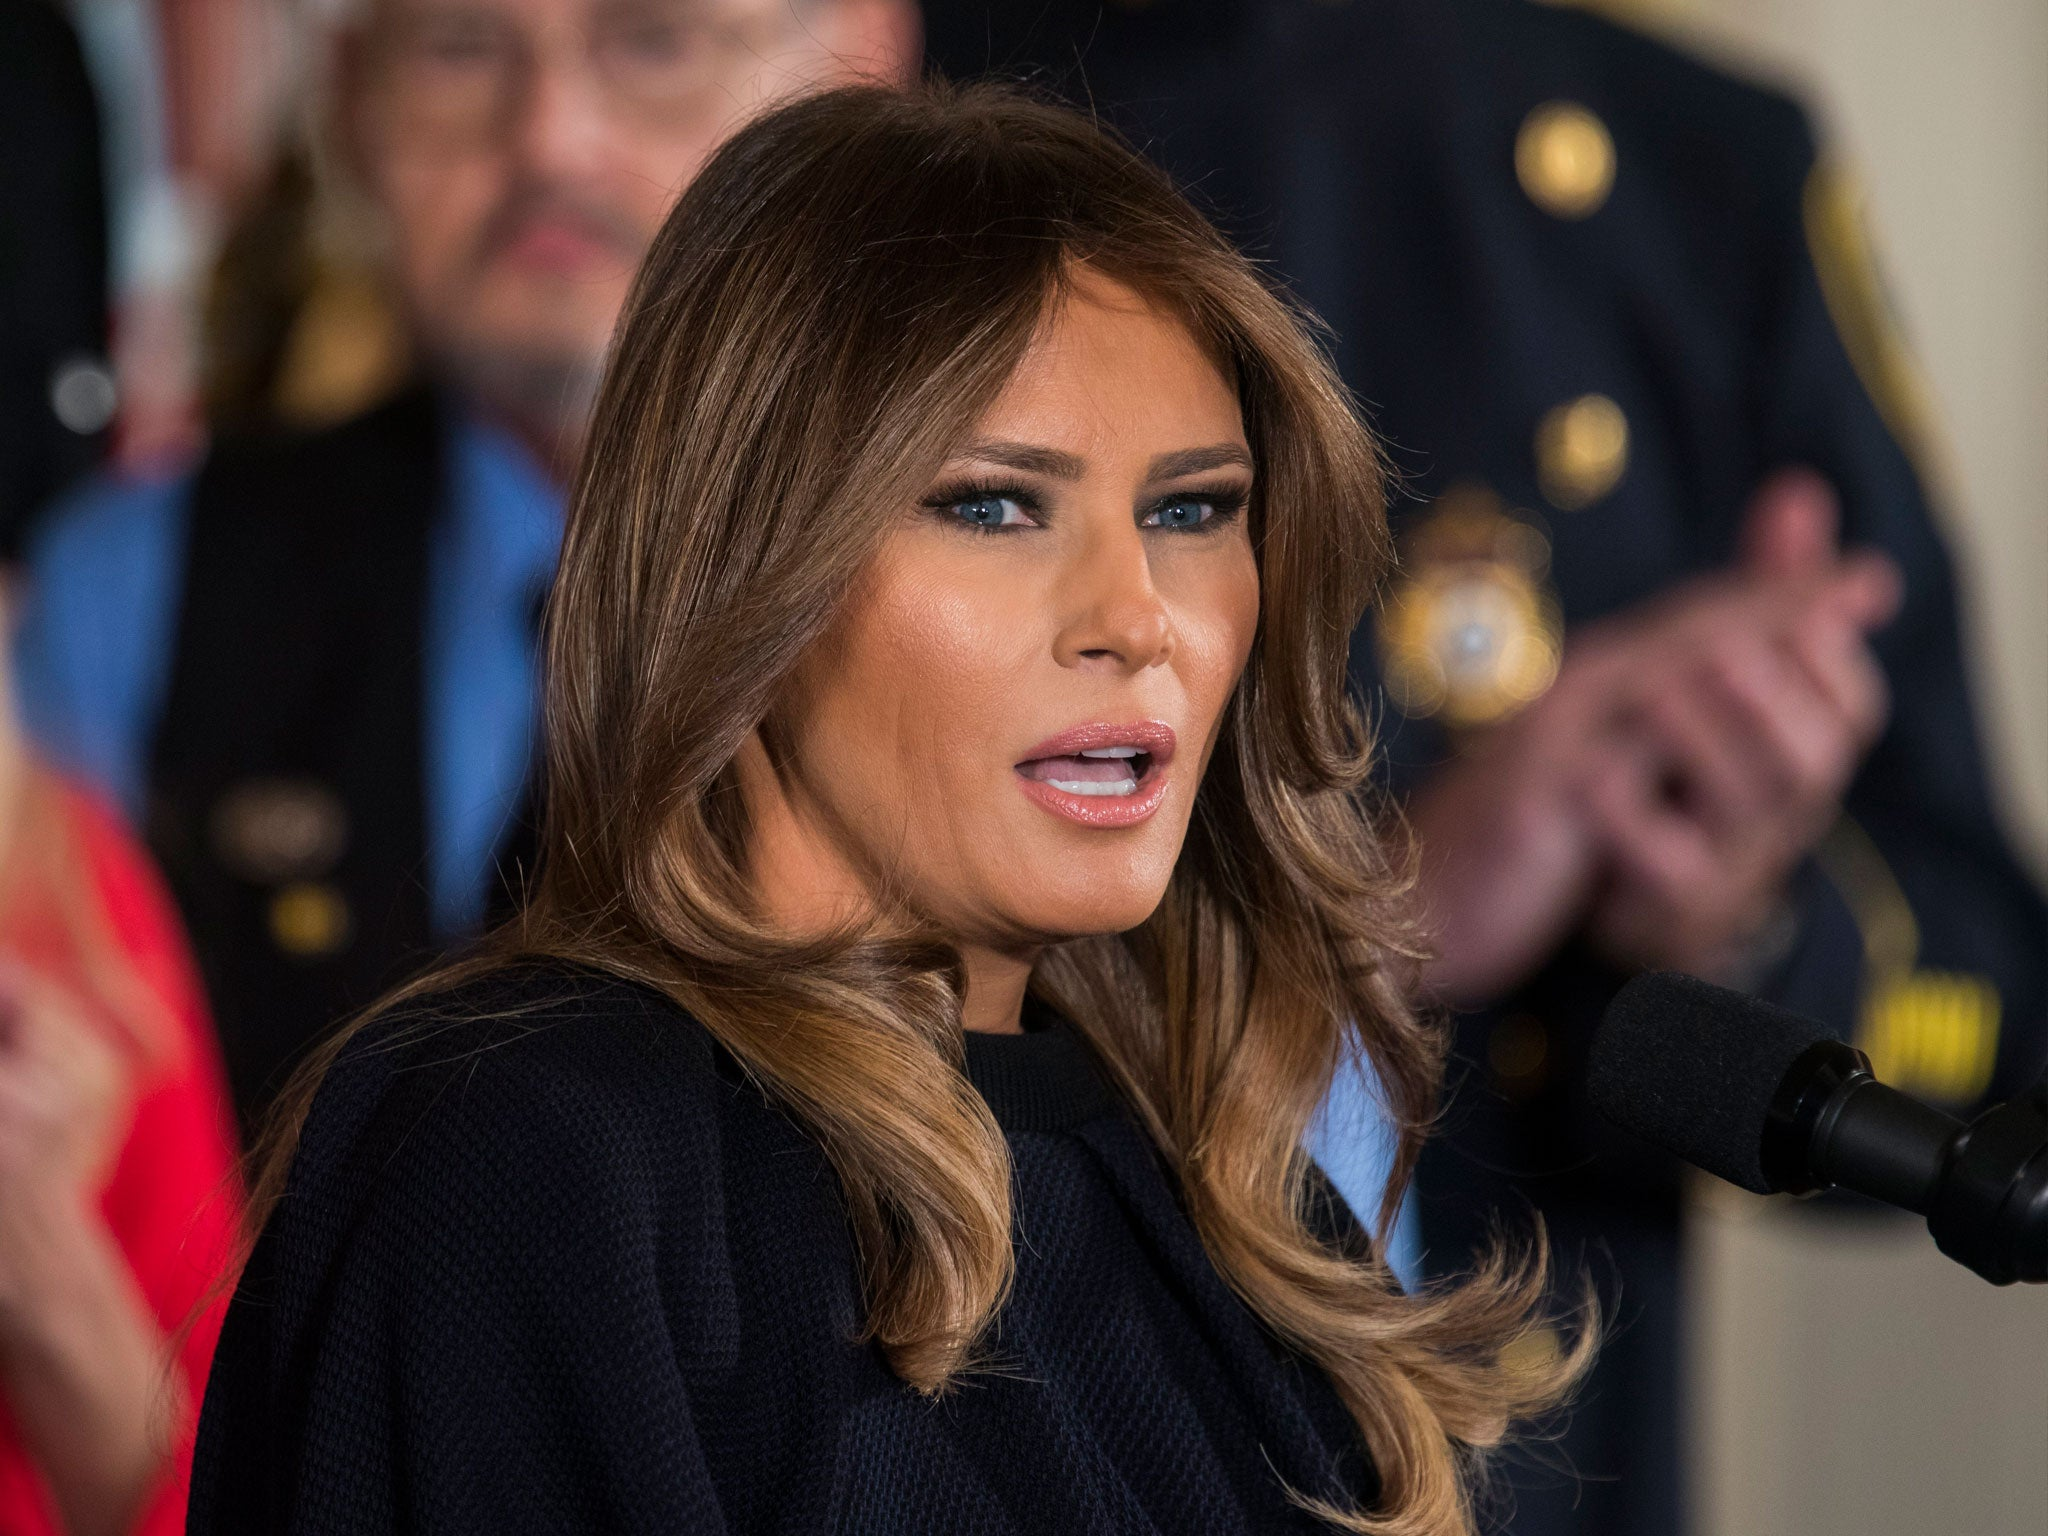 Melania Trump responds to New York attack: 'My heart ...